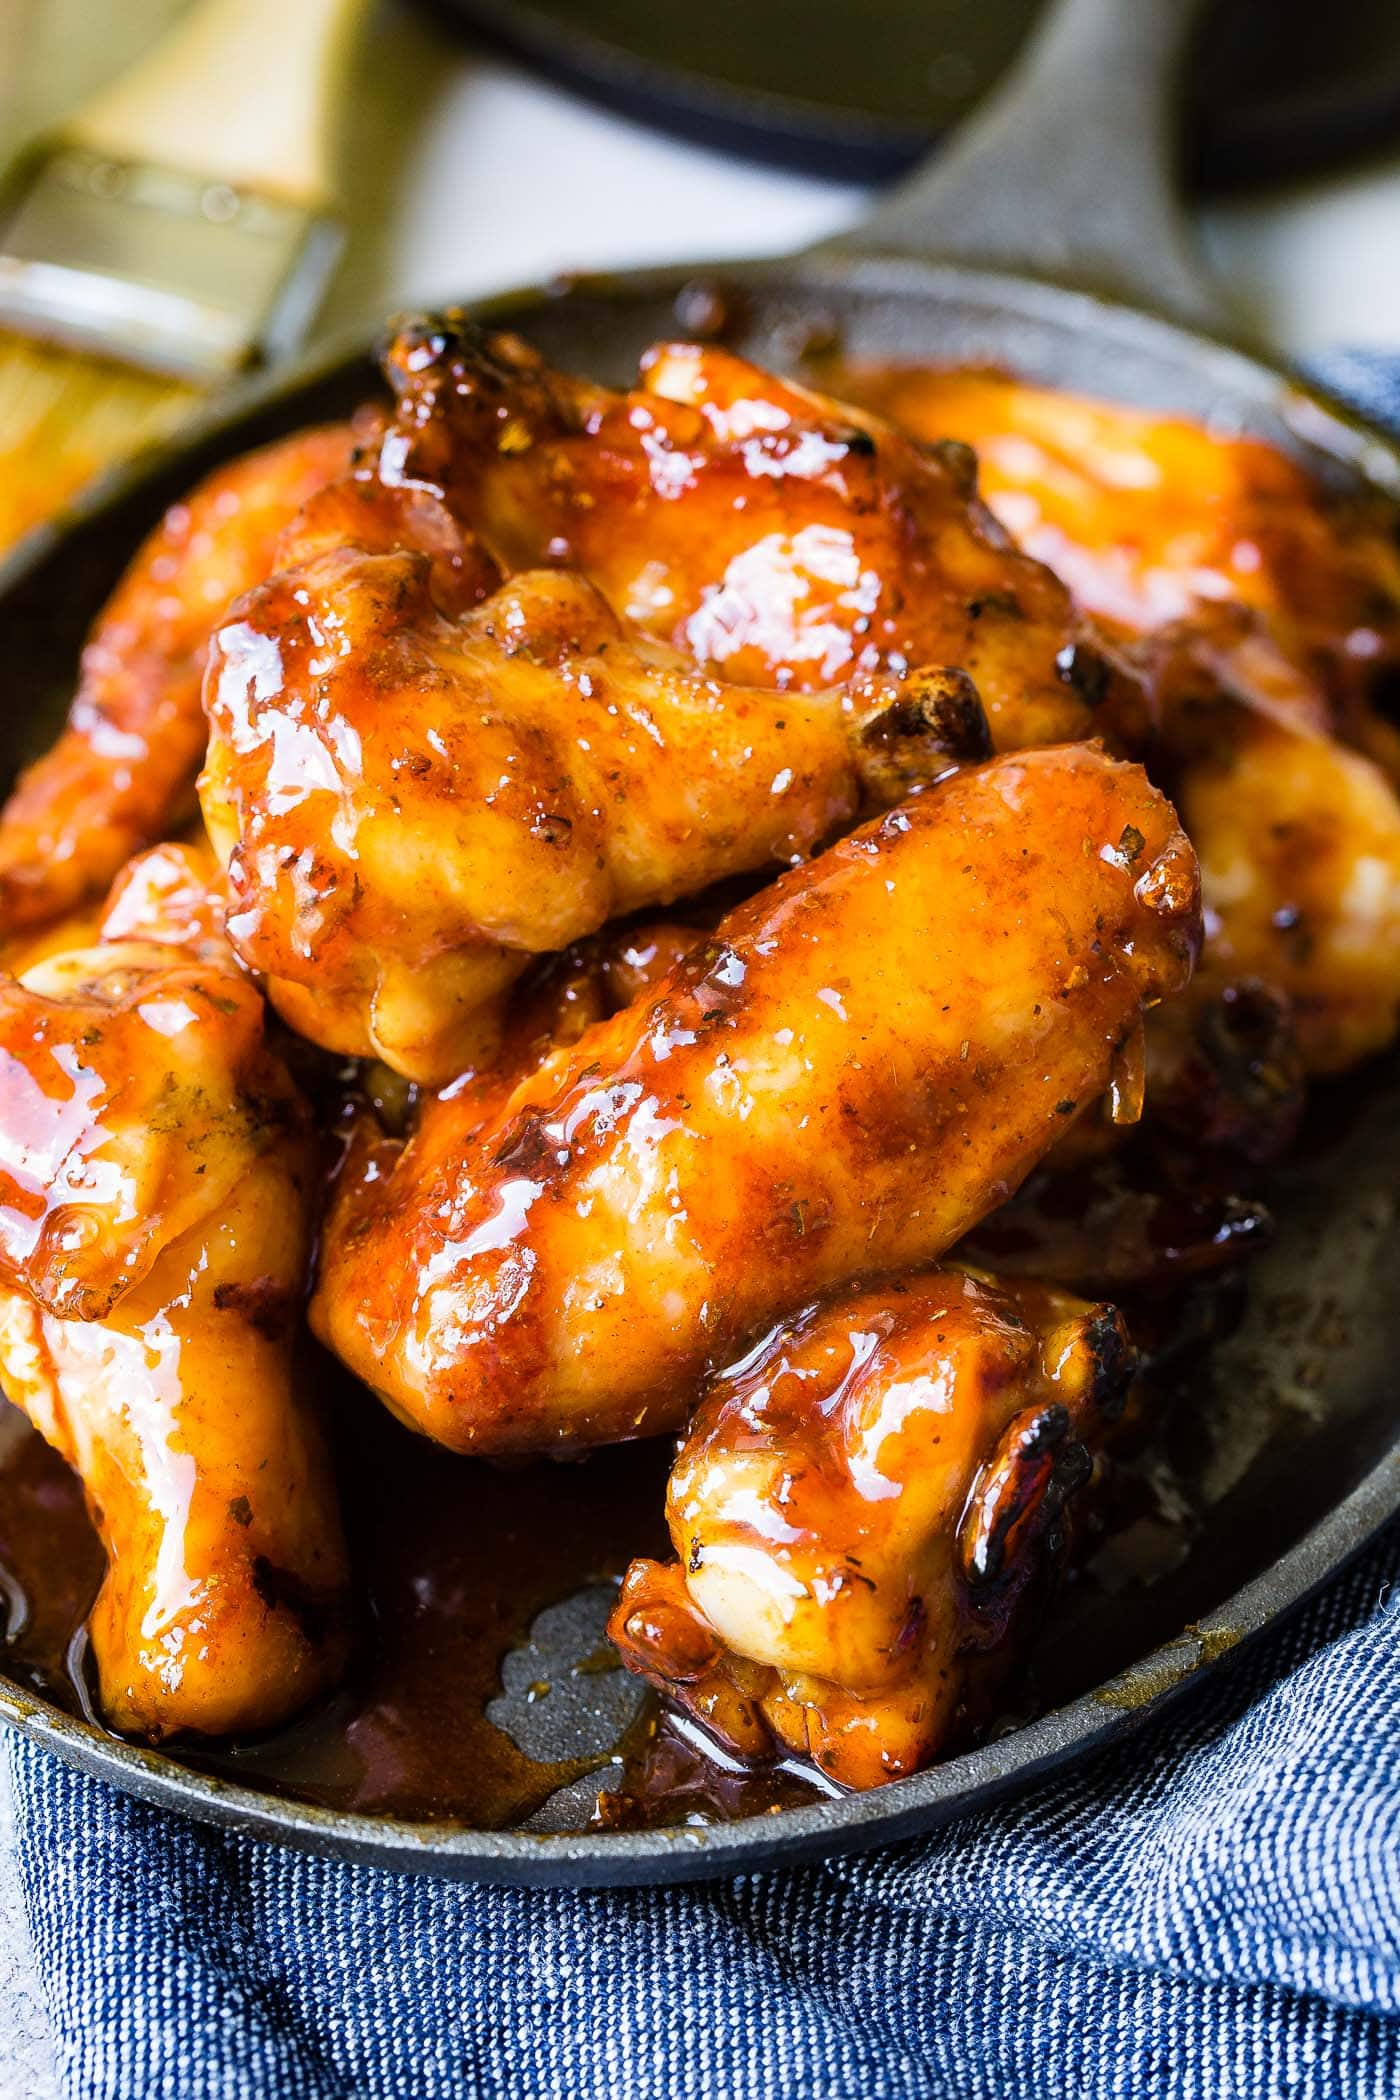 A photo of a plate full of glazed smoked chicken wings.